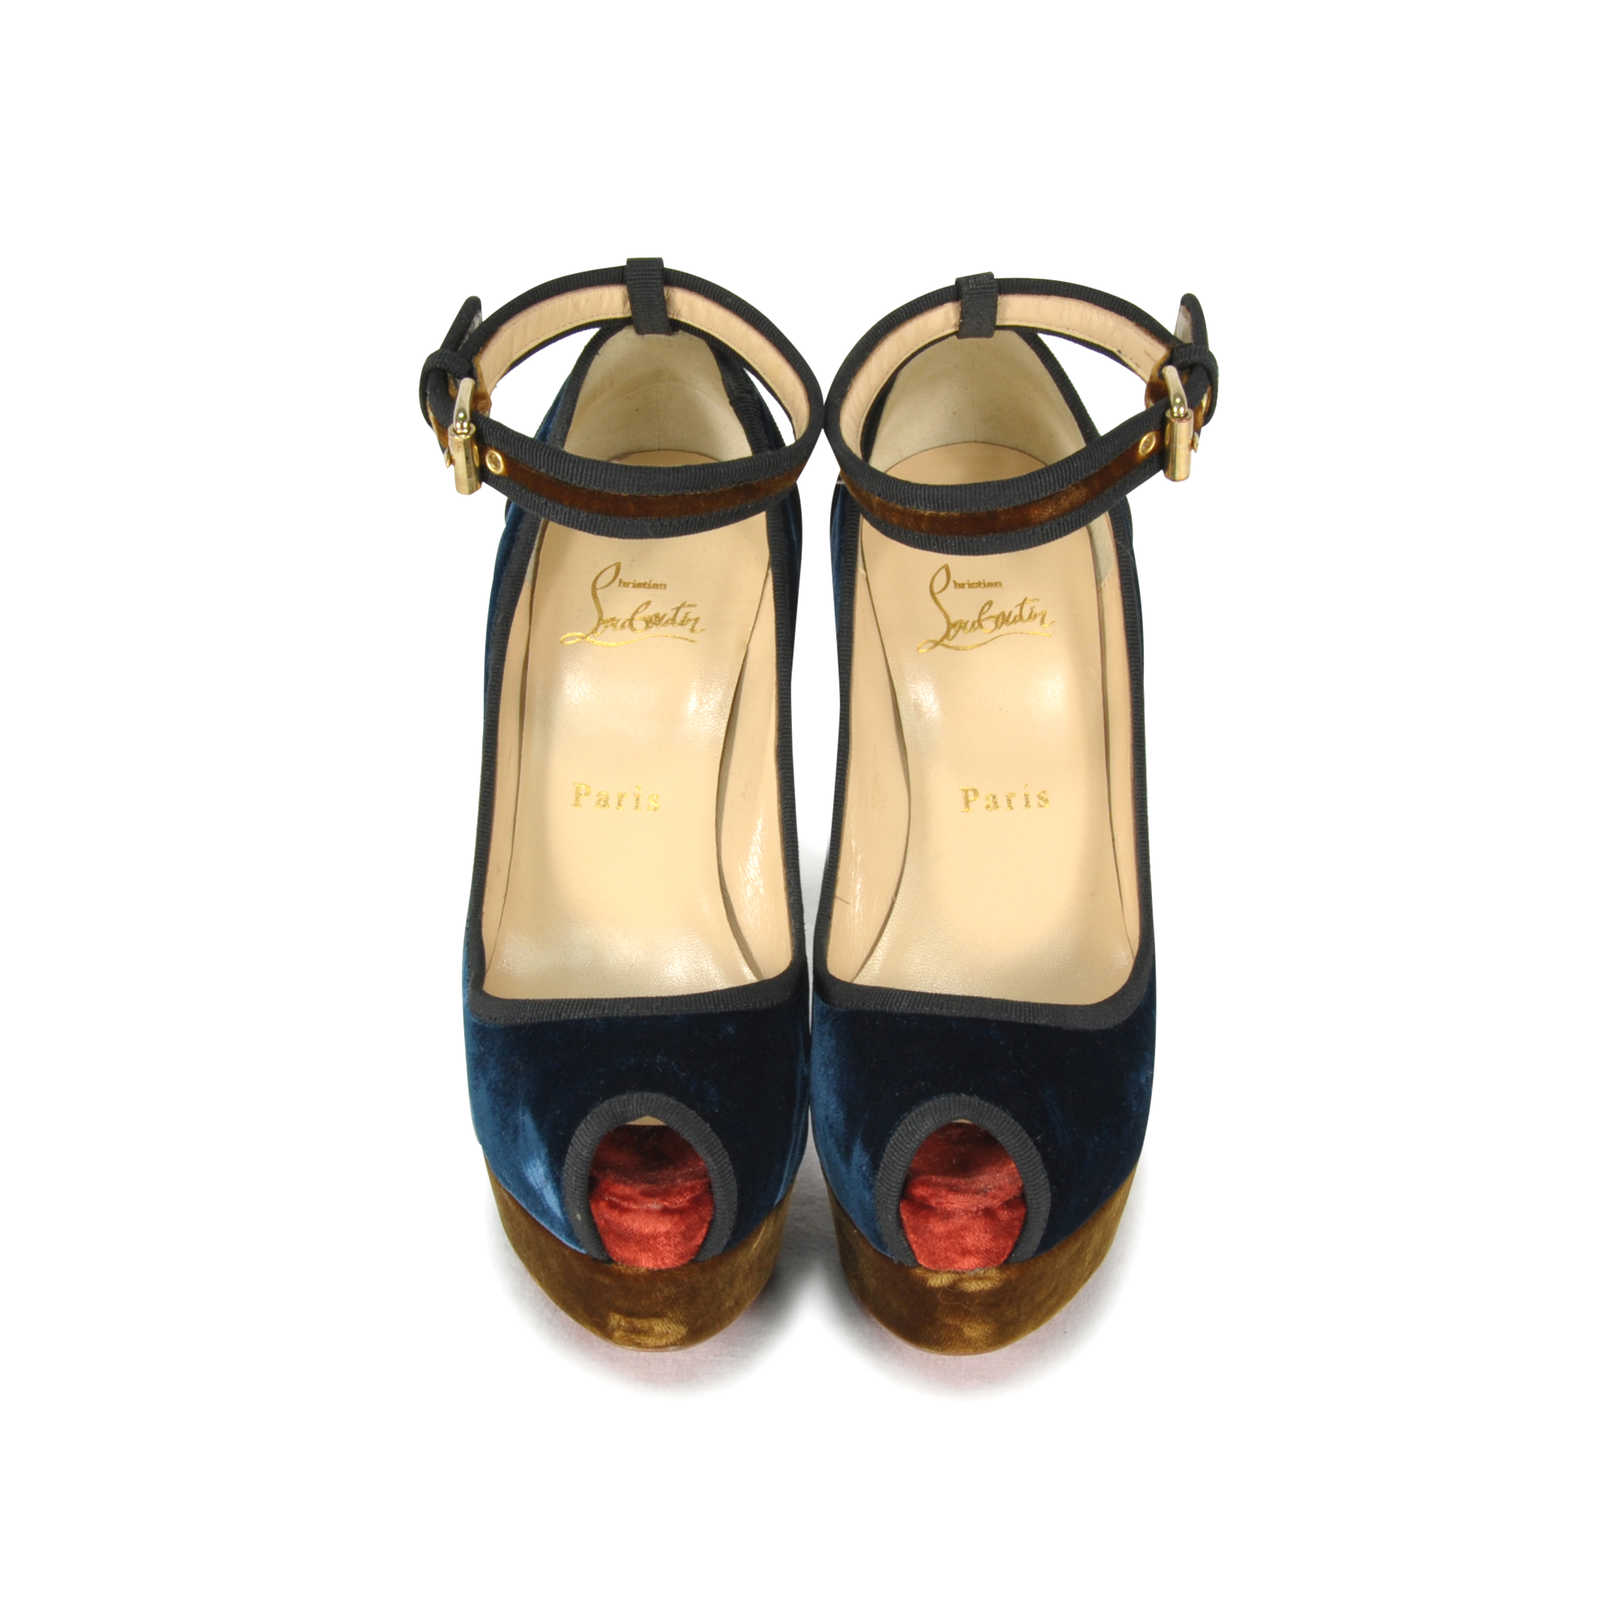 58ce668c715 Authentic Second Hand Christian Louboutin Minimi 140 Sandals  (PSS-034-00007) ...